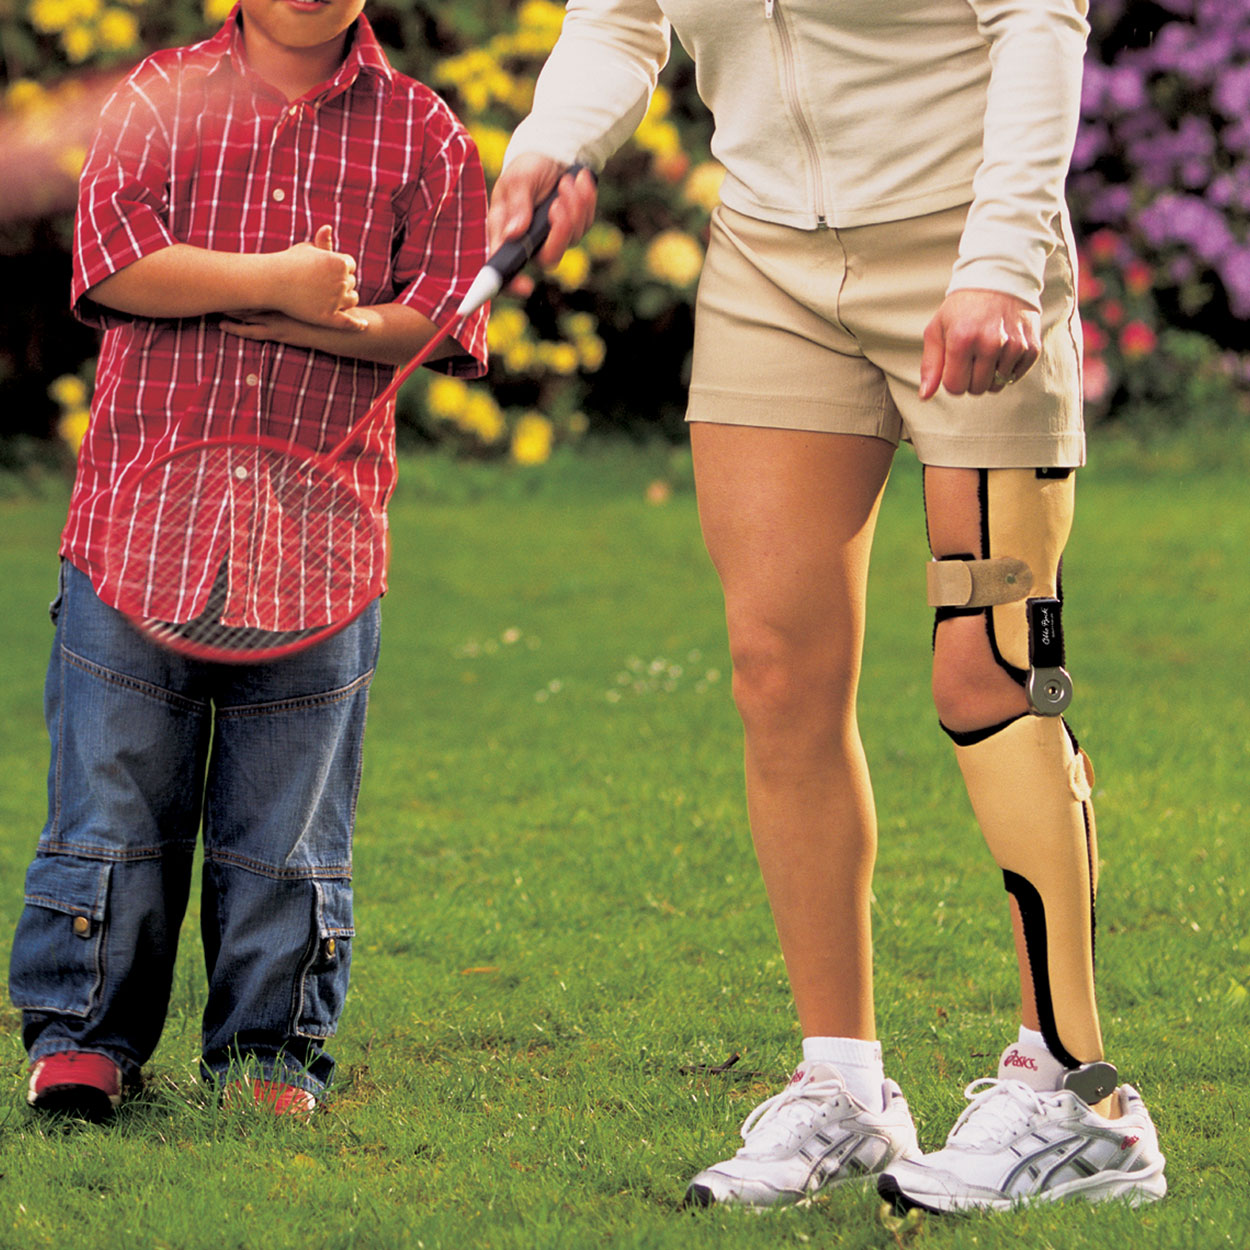 Lower Extremity Orthotics - Click to View >>